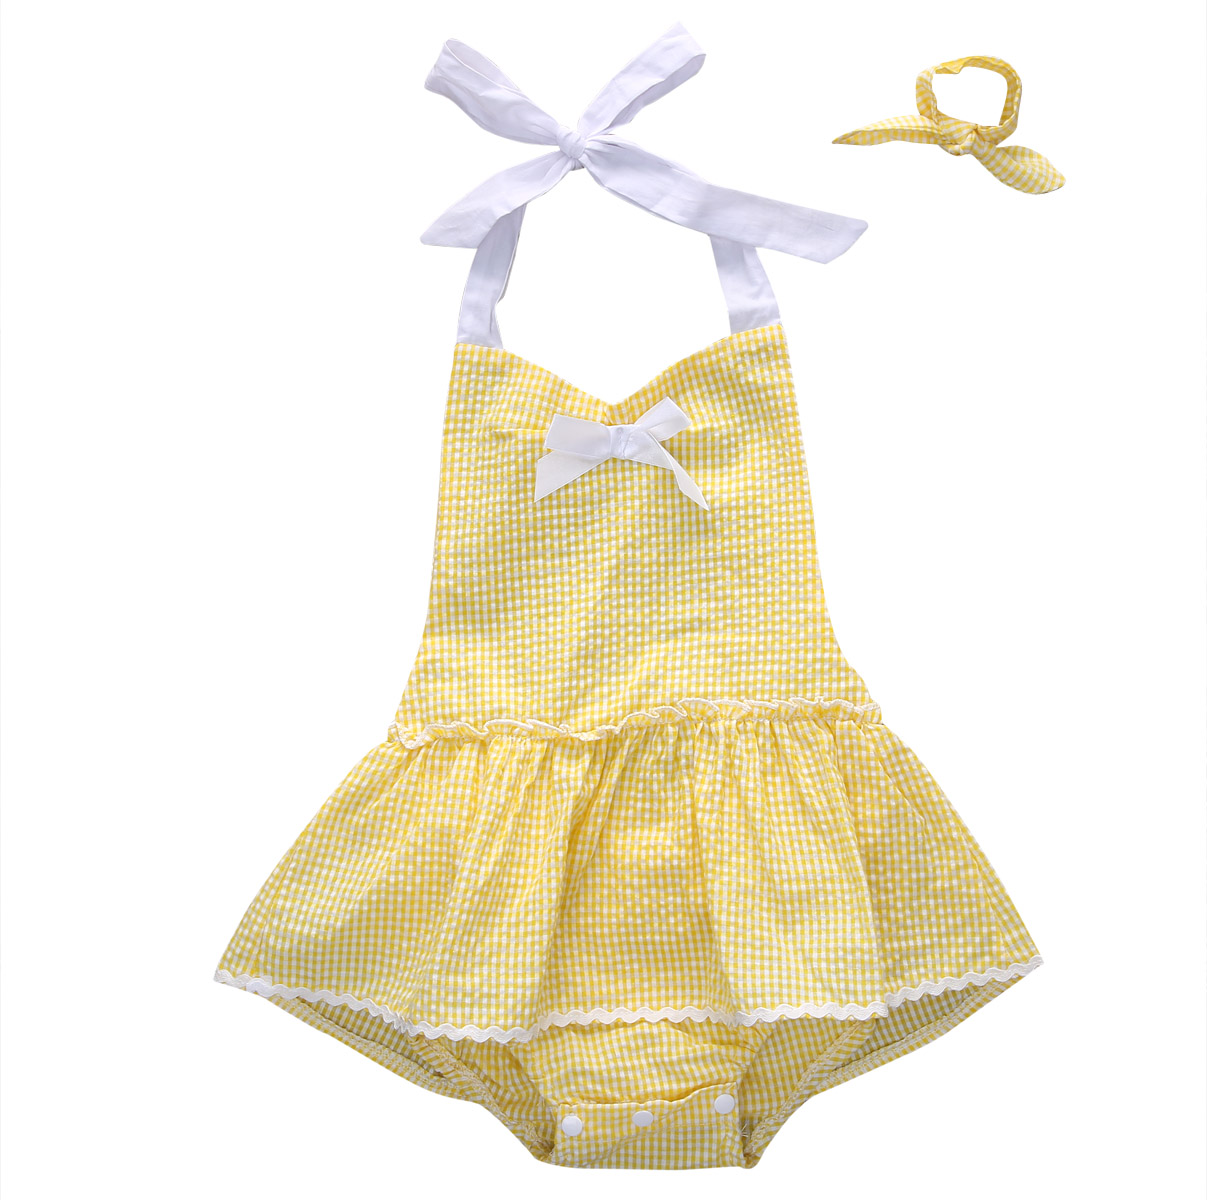 2pcs!!Infant Baby Girl Sleeveless Yellow Romper Dress Backless Bownot Outfits Sunsuit Headband Set 0-3Y baby girl 1st birthday outfits short sleeve infant clothing sets lace romper dress headband shoe toddler tutu set baby s clothes